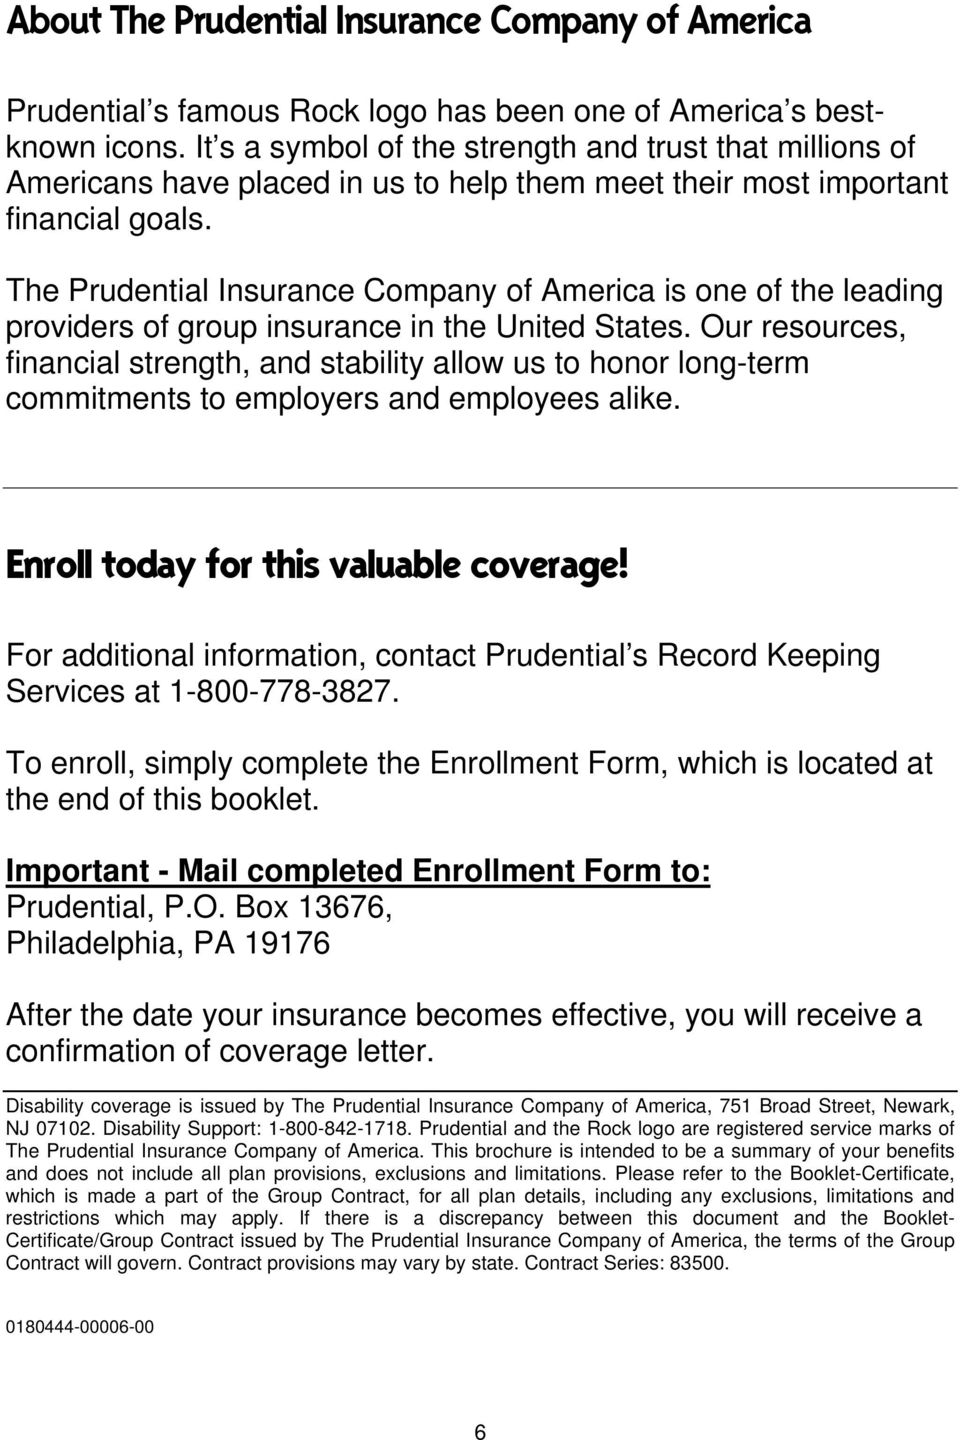 The Prudential Insurance Company of America is one of the leading providers of group insurance in the United States.